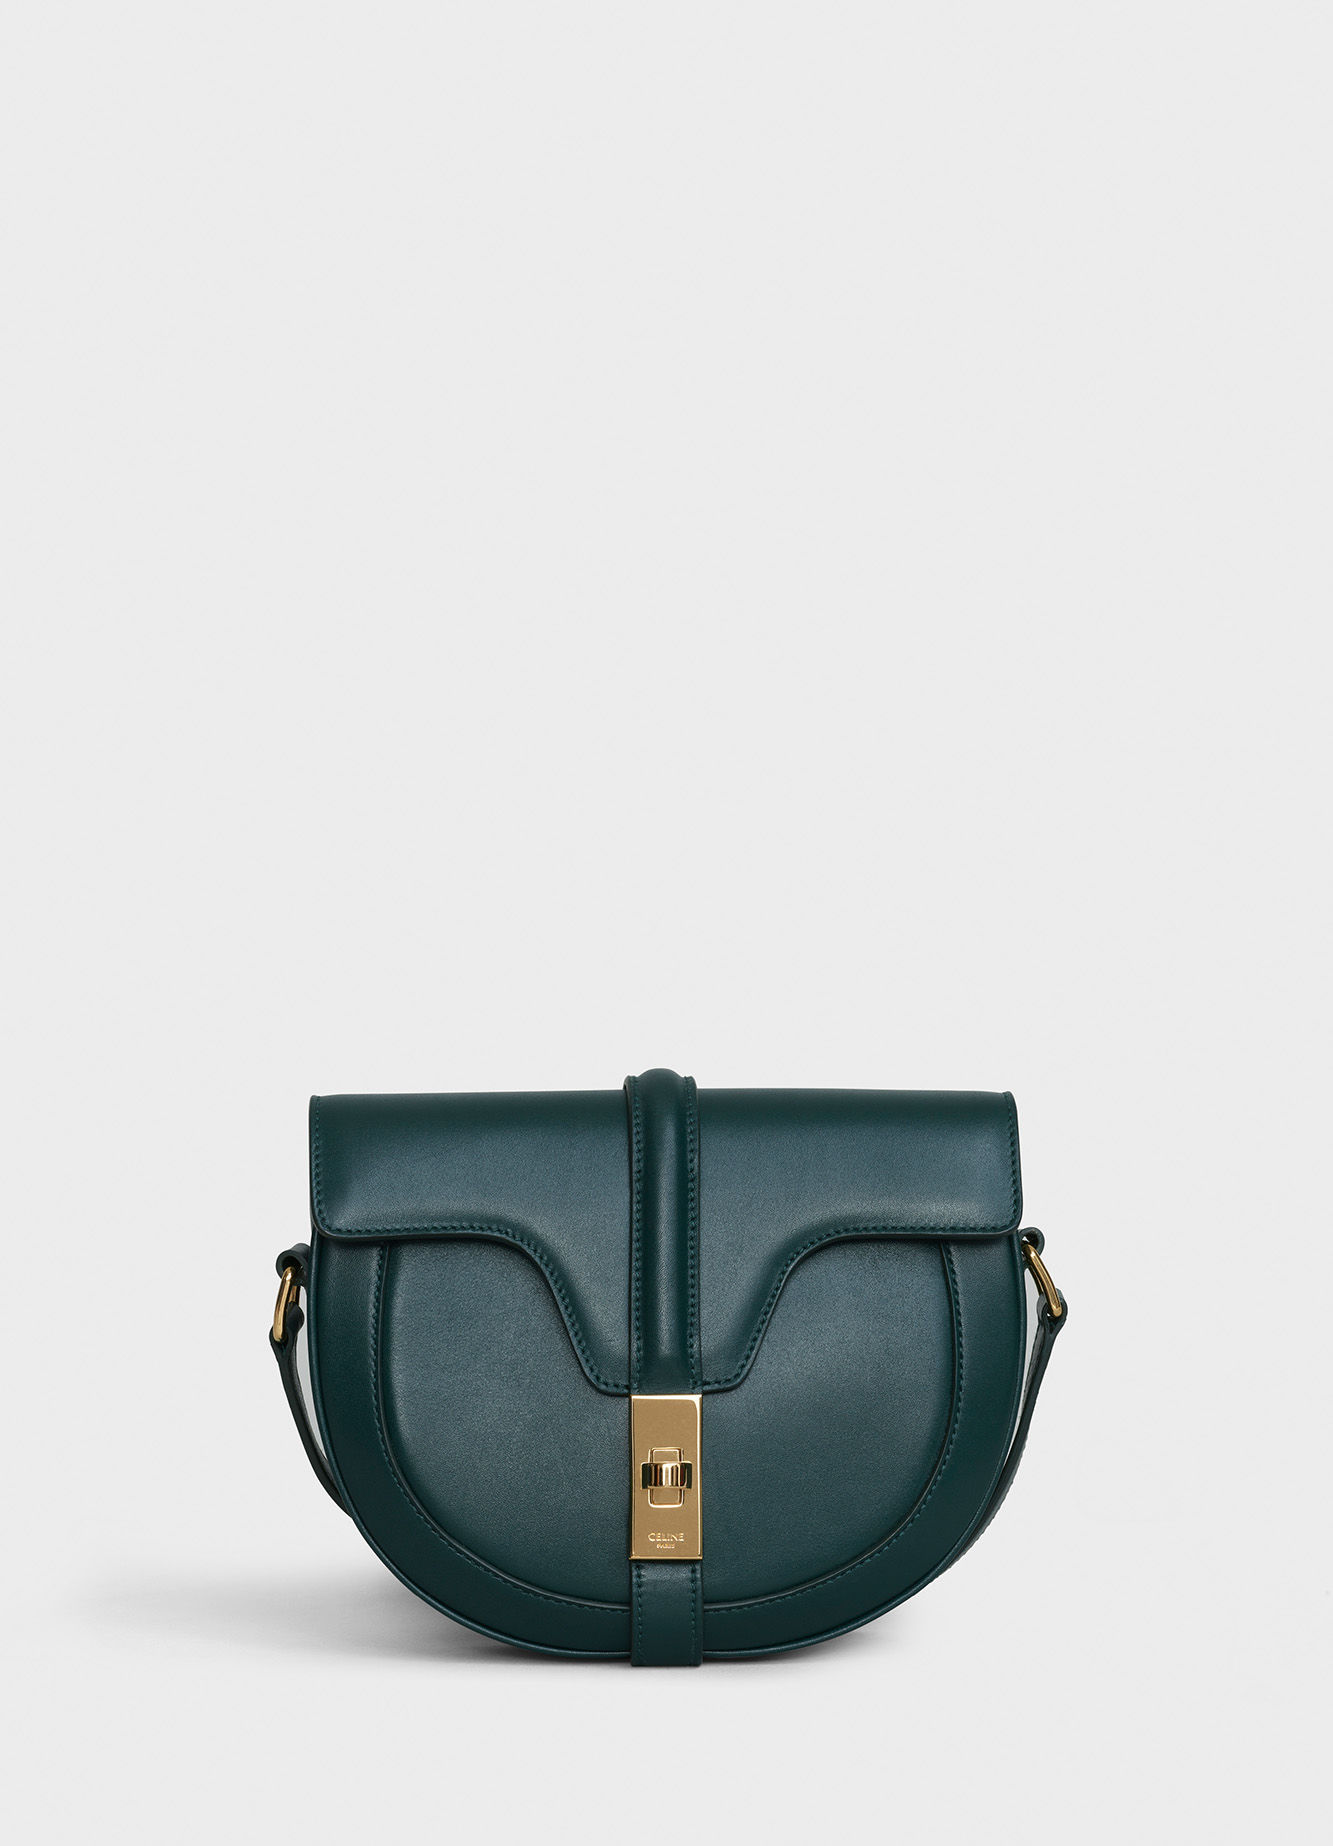 celine  SMALL BESACE 16 BAG IN SATINATED CALFSKIN